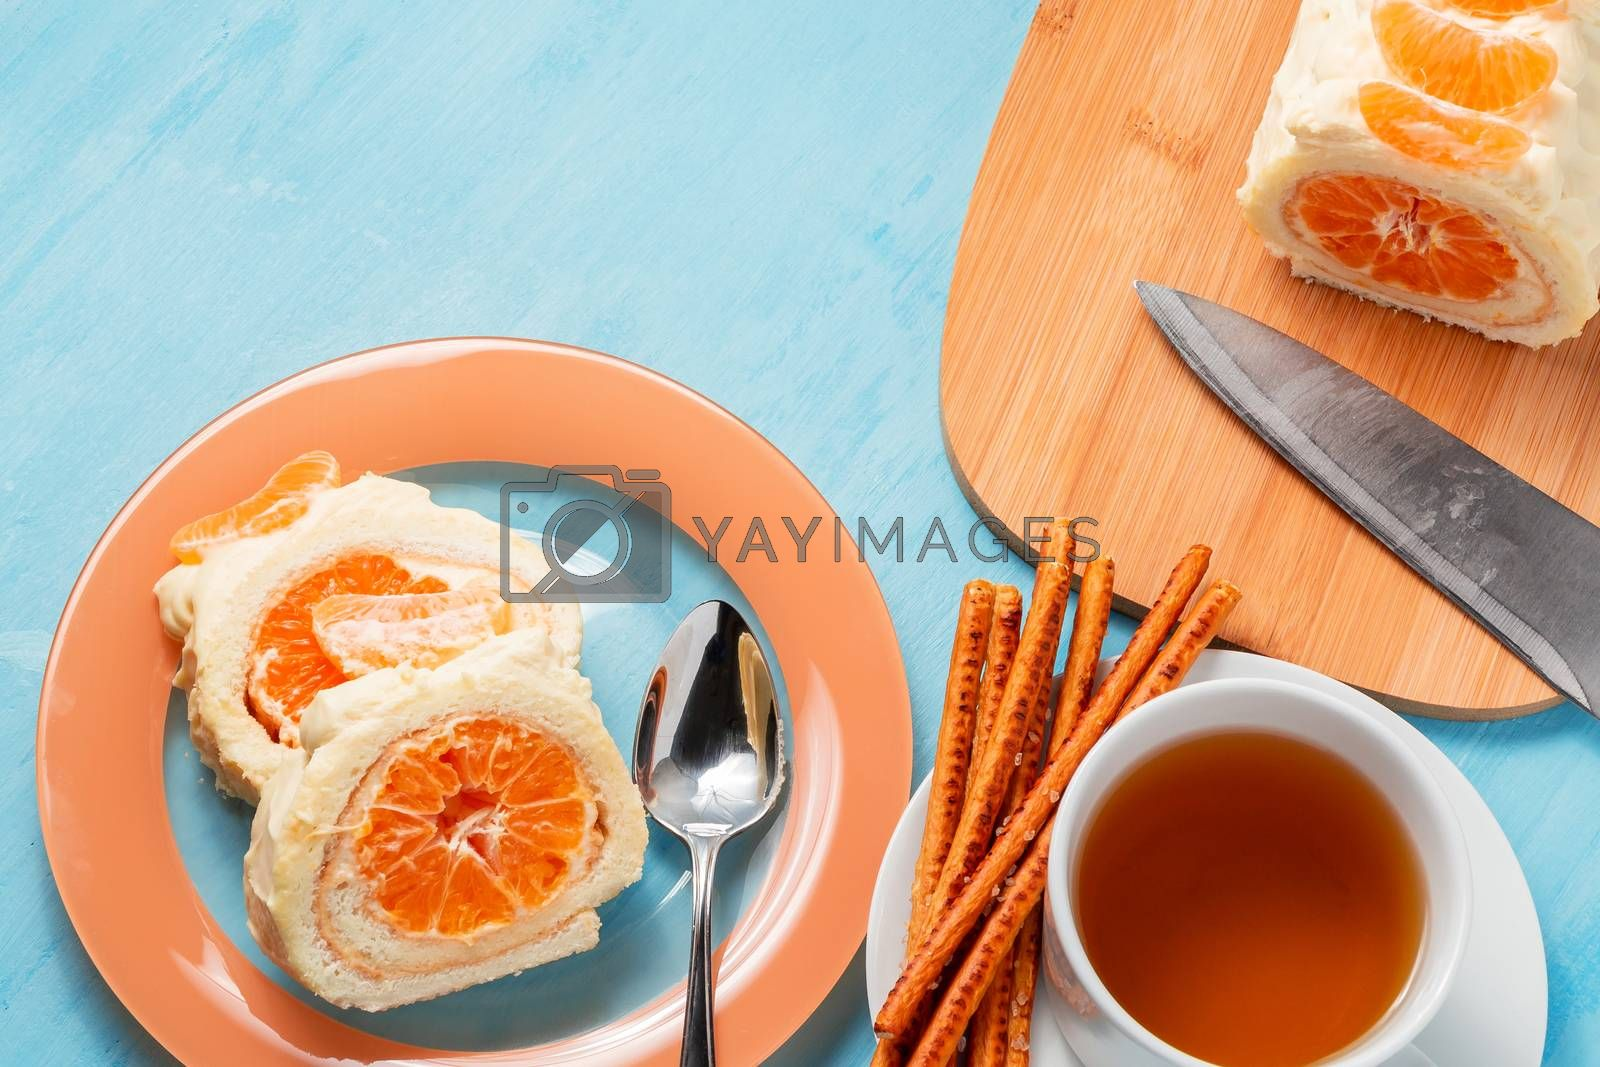 Sweet roll with whipped cream and tangerine filling and a cup of tea by galsand